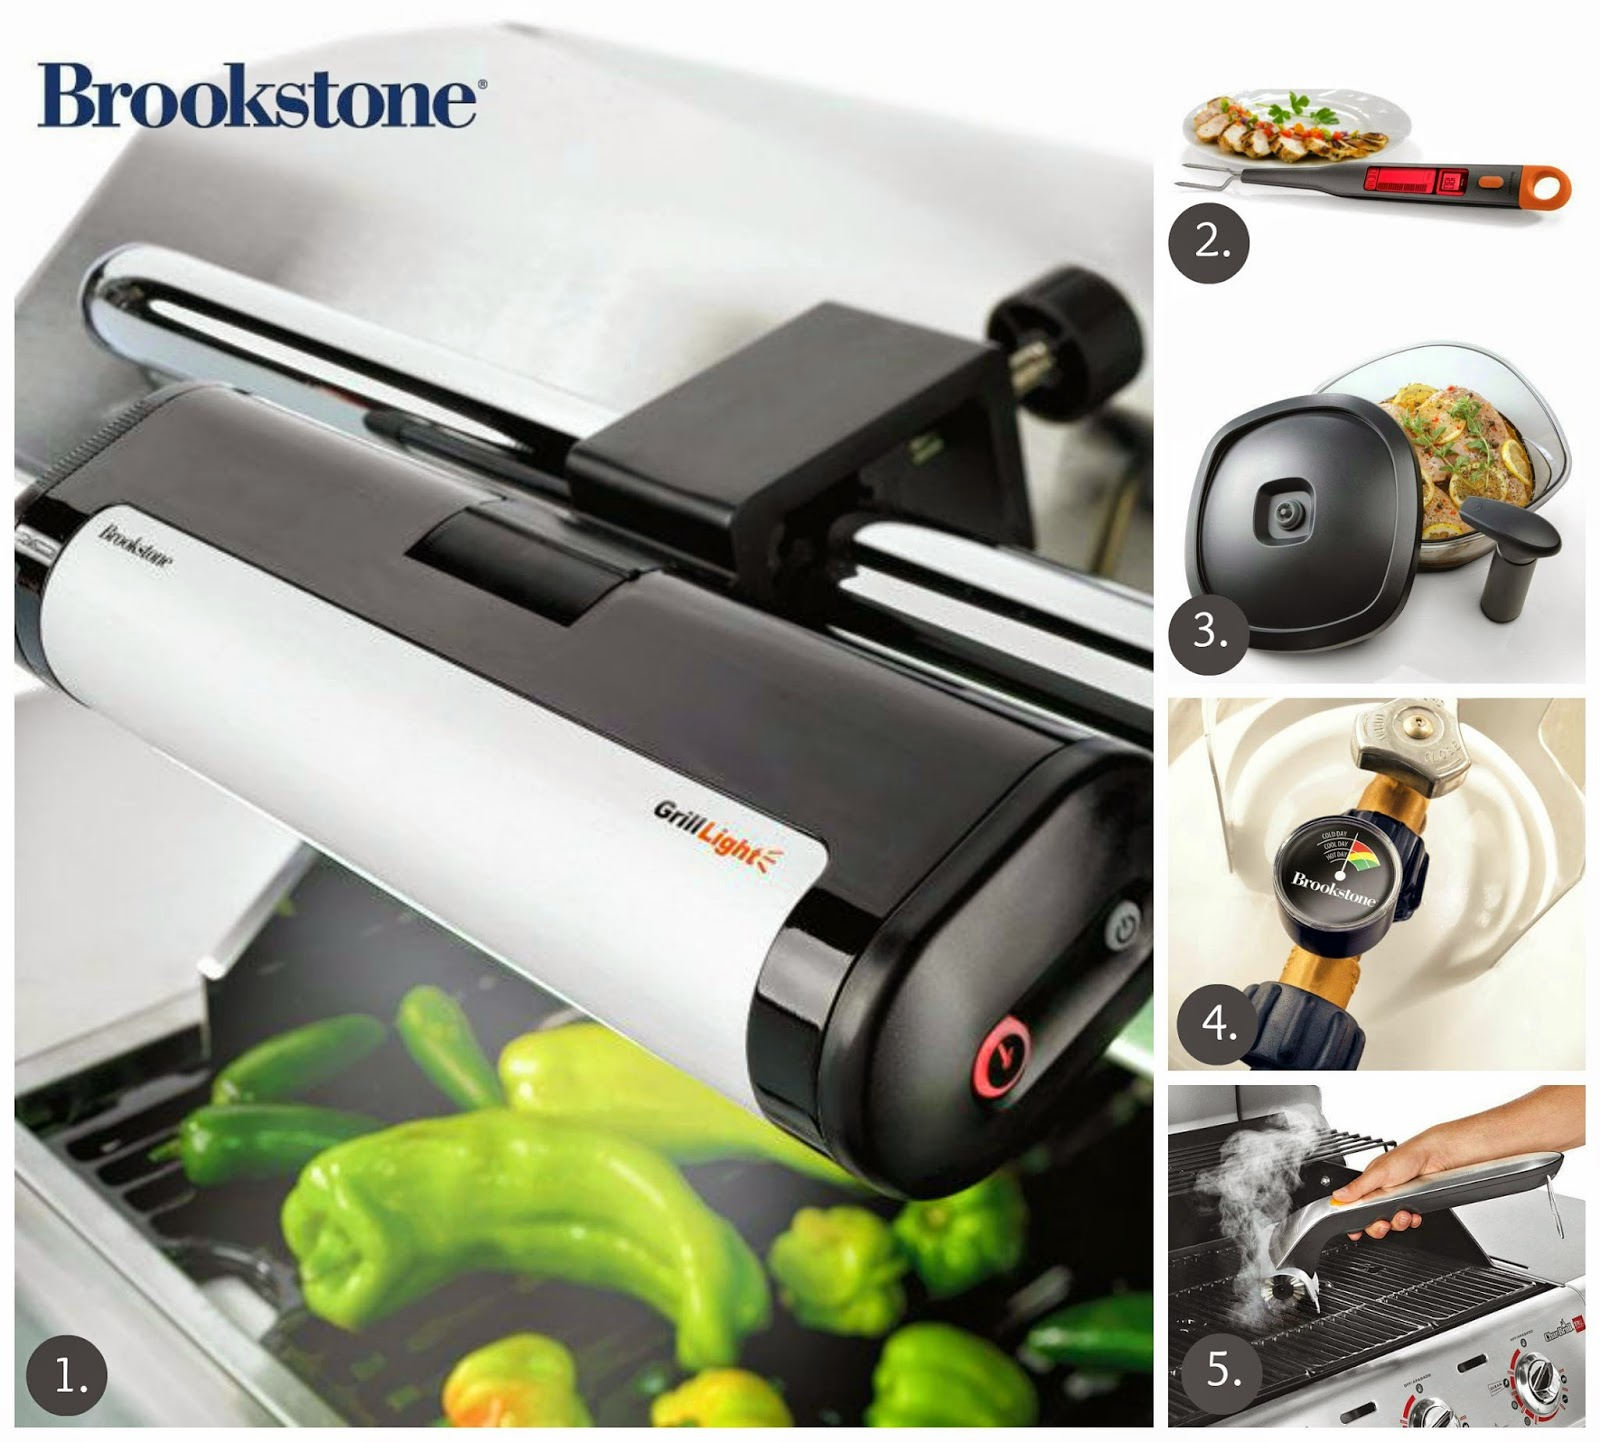 Focal Point Styling Grill Gadget Gifts For Dad